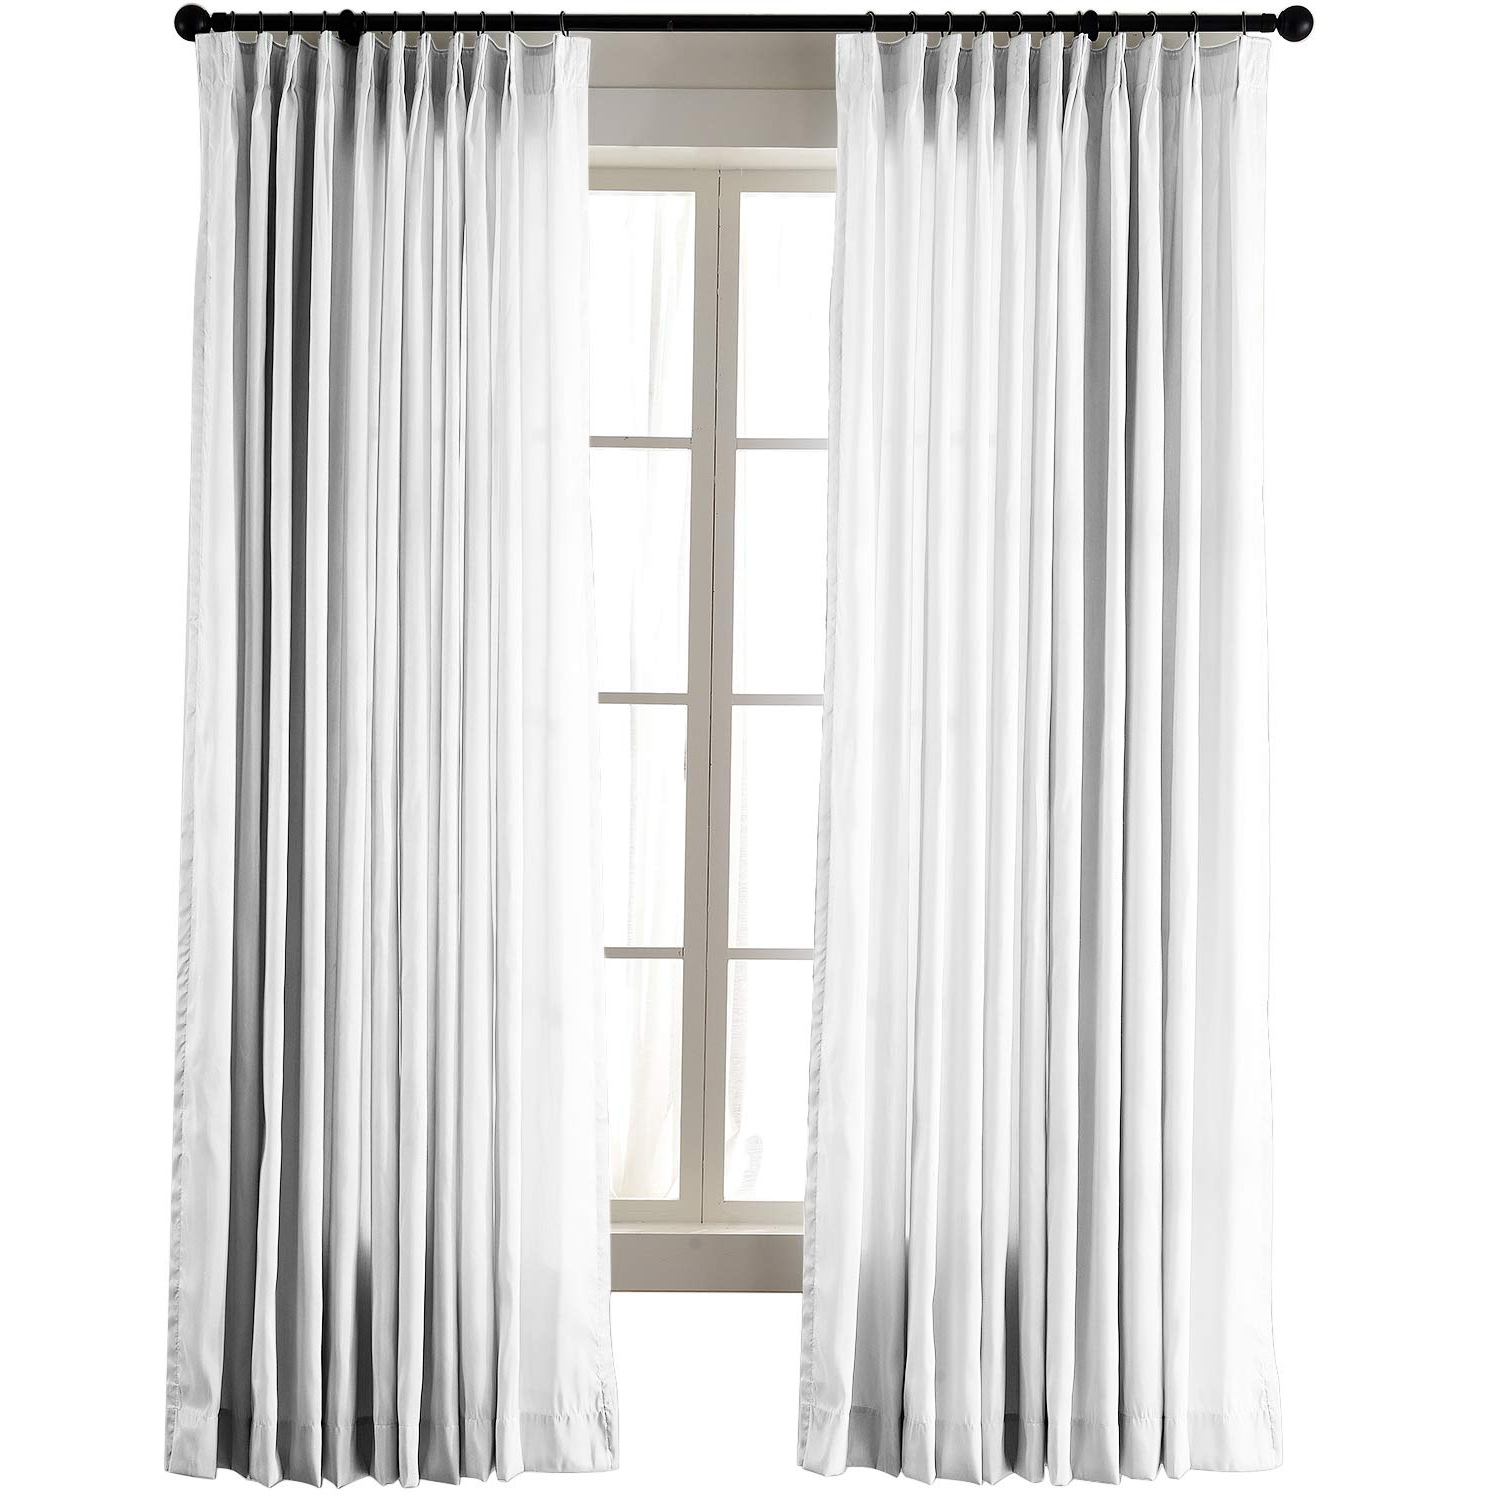 "Fashionable Off White Vintage Faux Textured Silk Curtains Pertaining To Chadmade Vintage Textured Faux Dupioni Silk Drape Curtain Panel Pinch  Pleated 72"" W X 84"" L With White Blackout Lined, White Ivory (Gallery 13 of 20)"